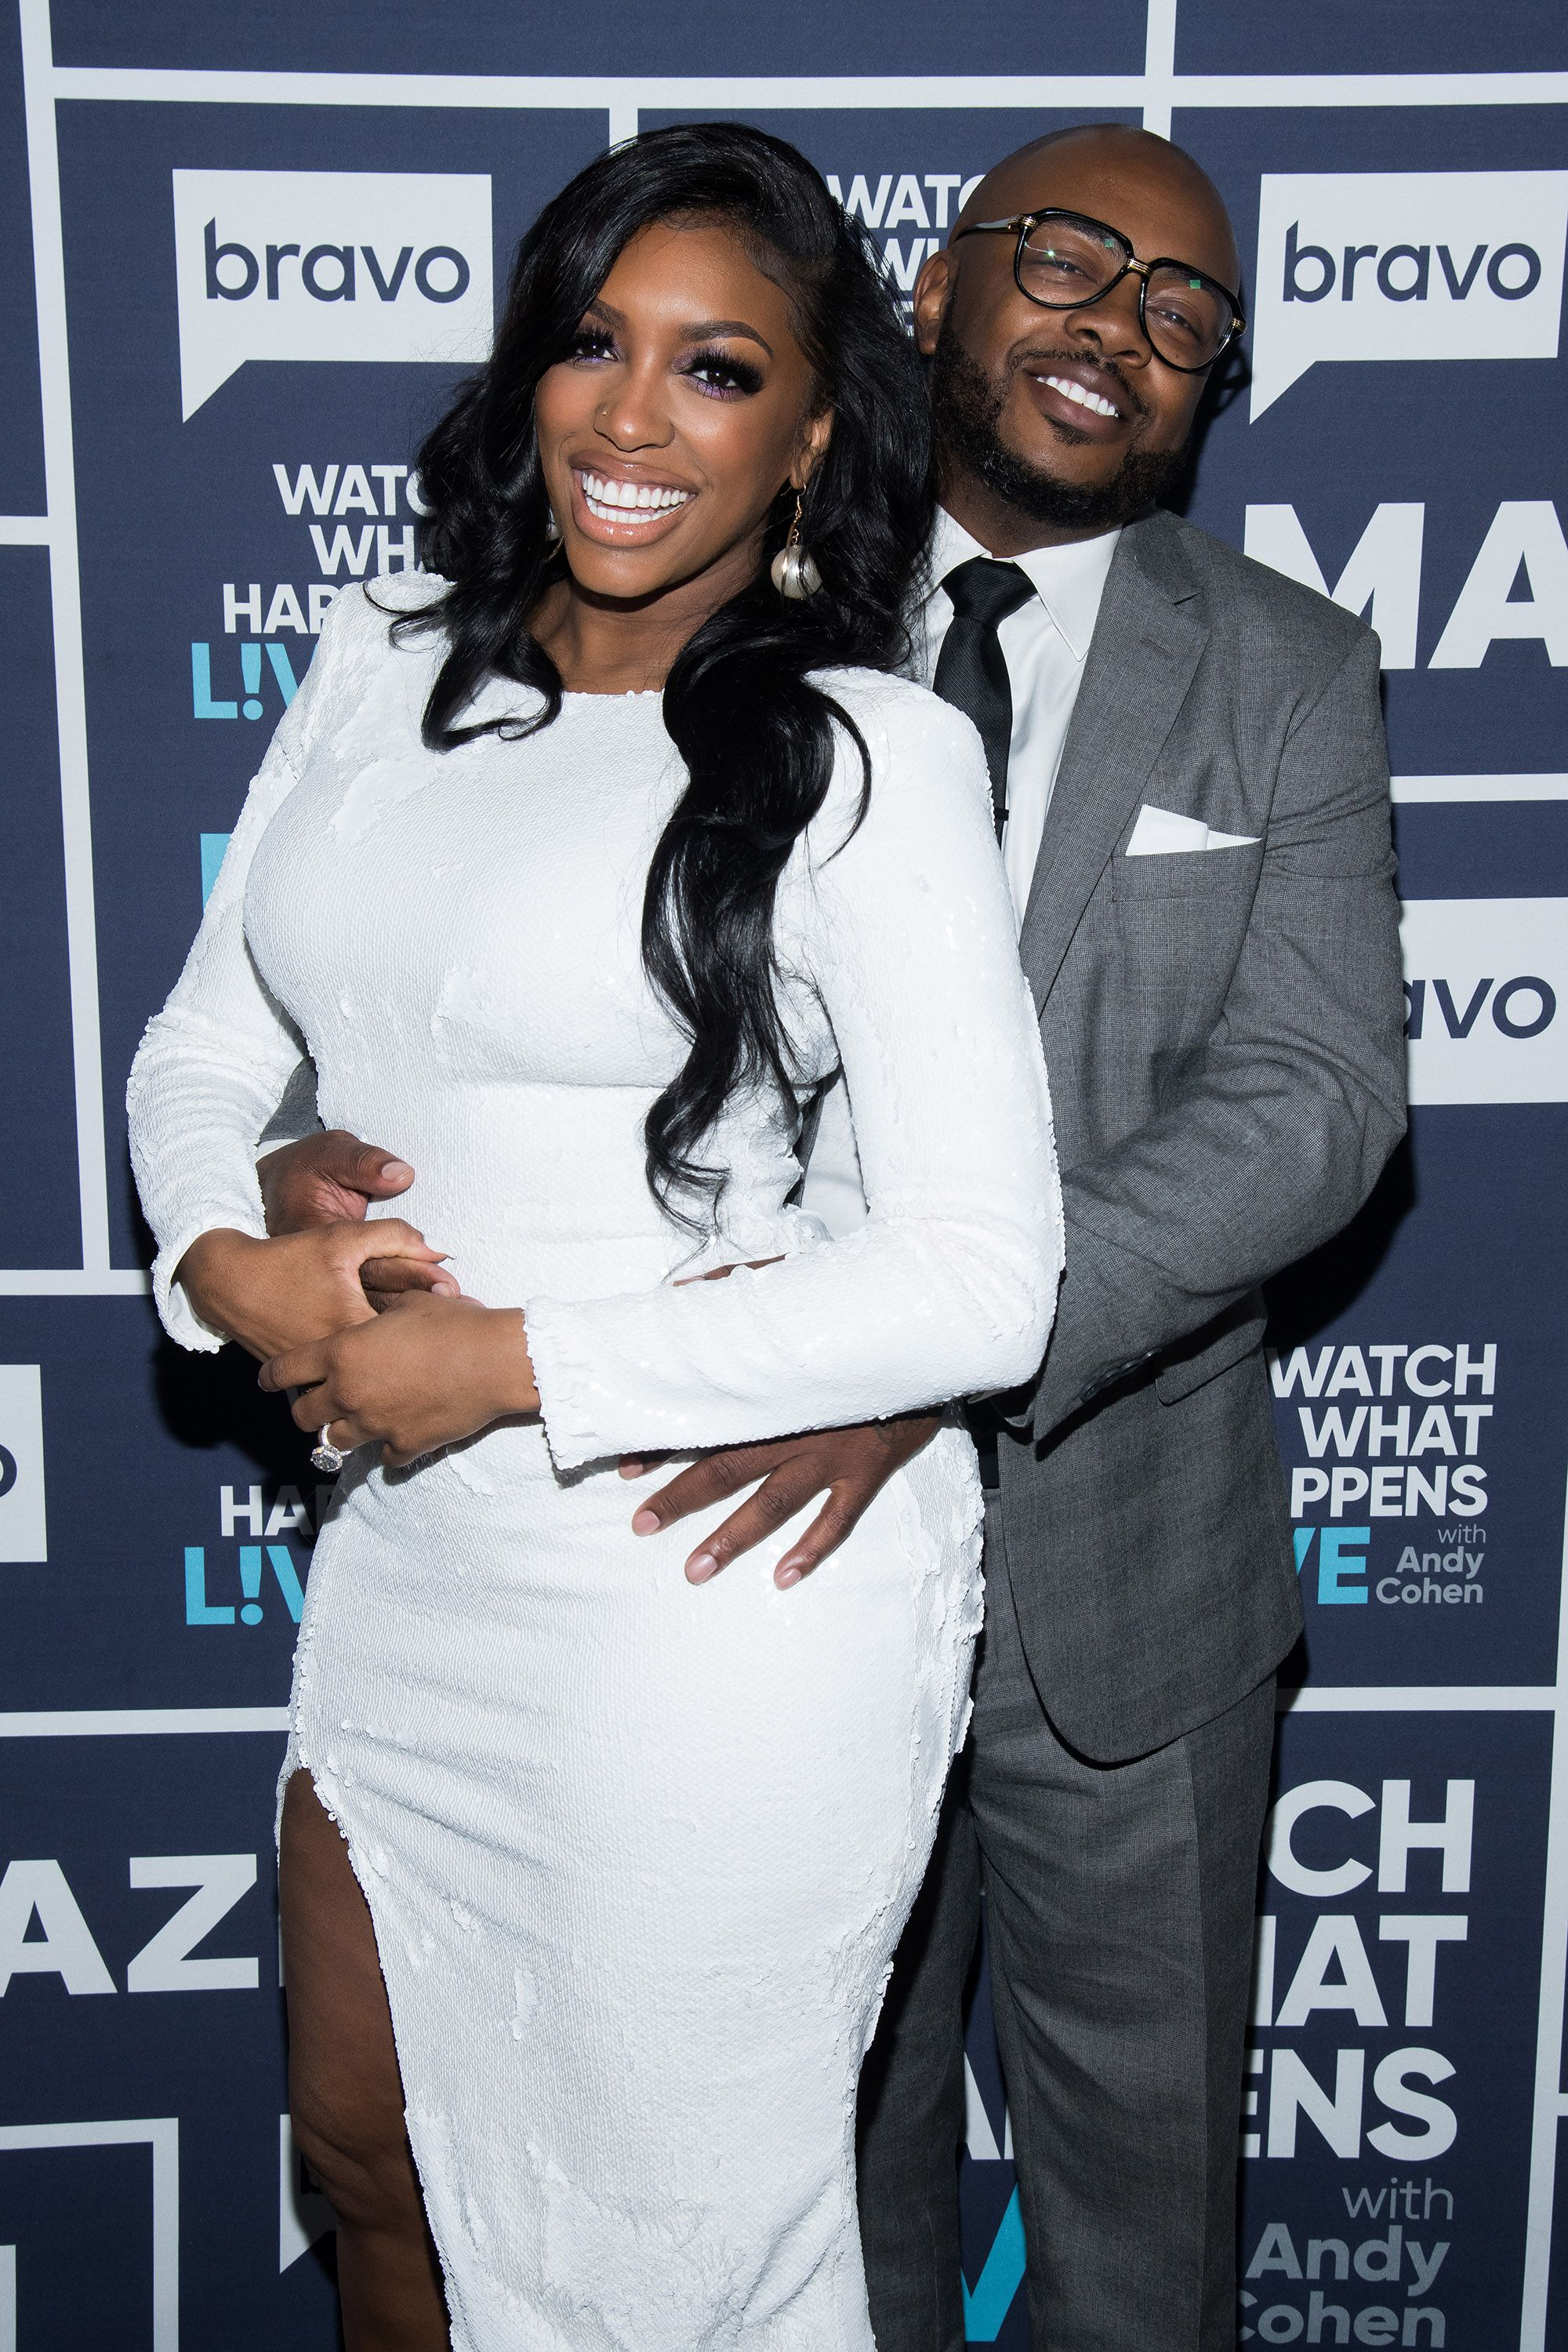 Porsha Williams and Dennis McKinley pose for a photo.